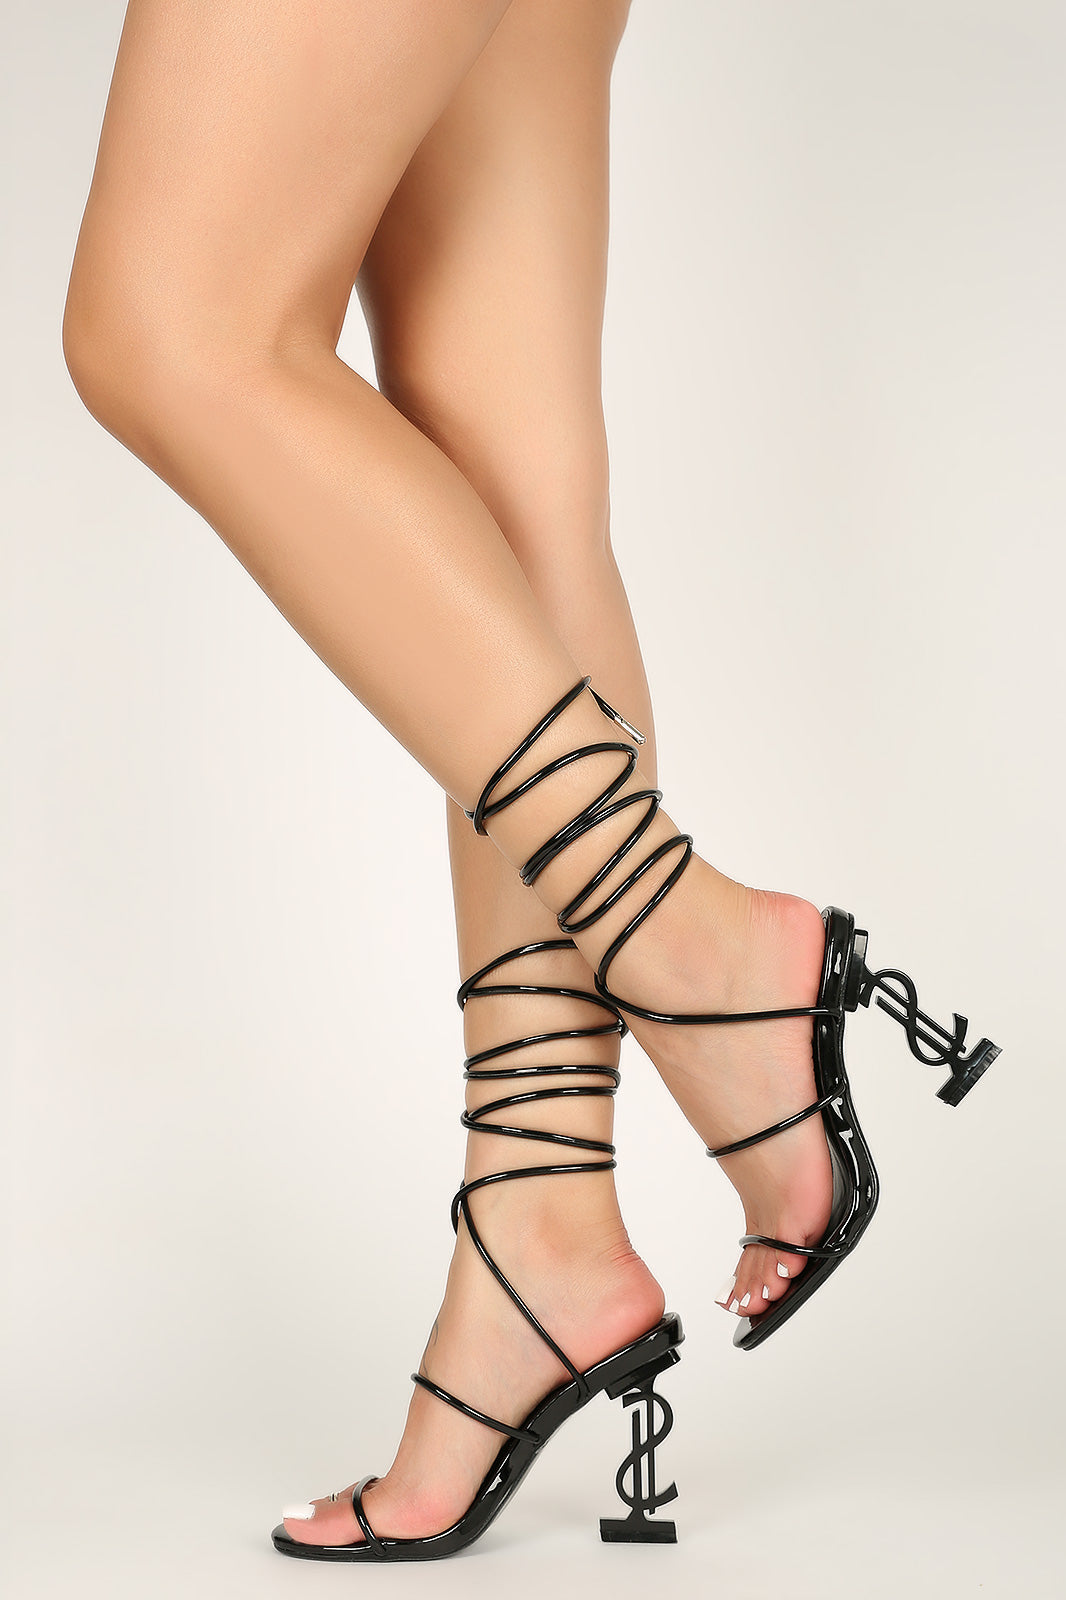 open toe silhouette, strappy vamp to a lace-up ankle closure, dollar sign